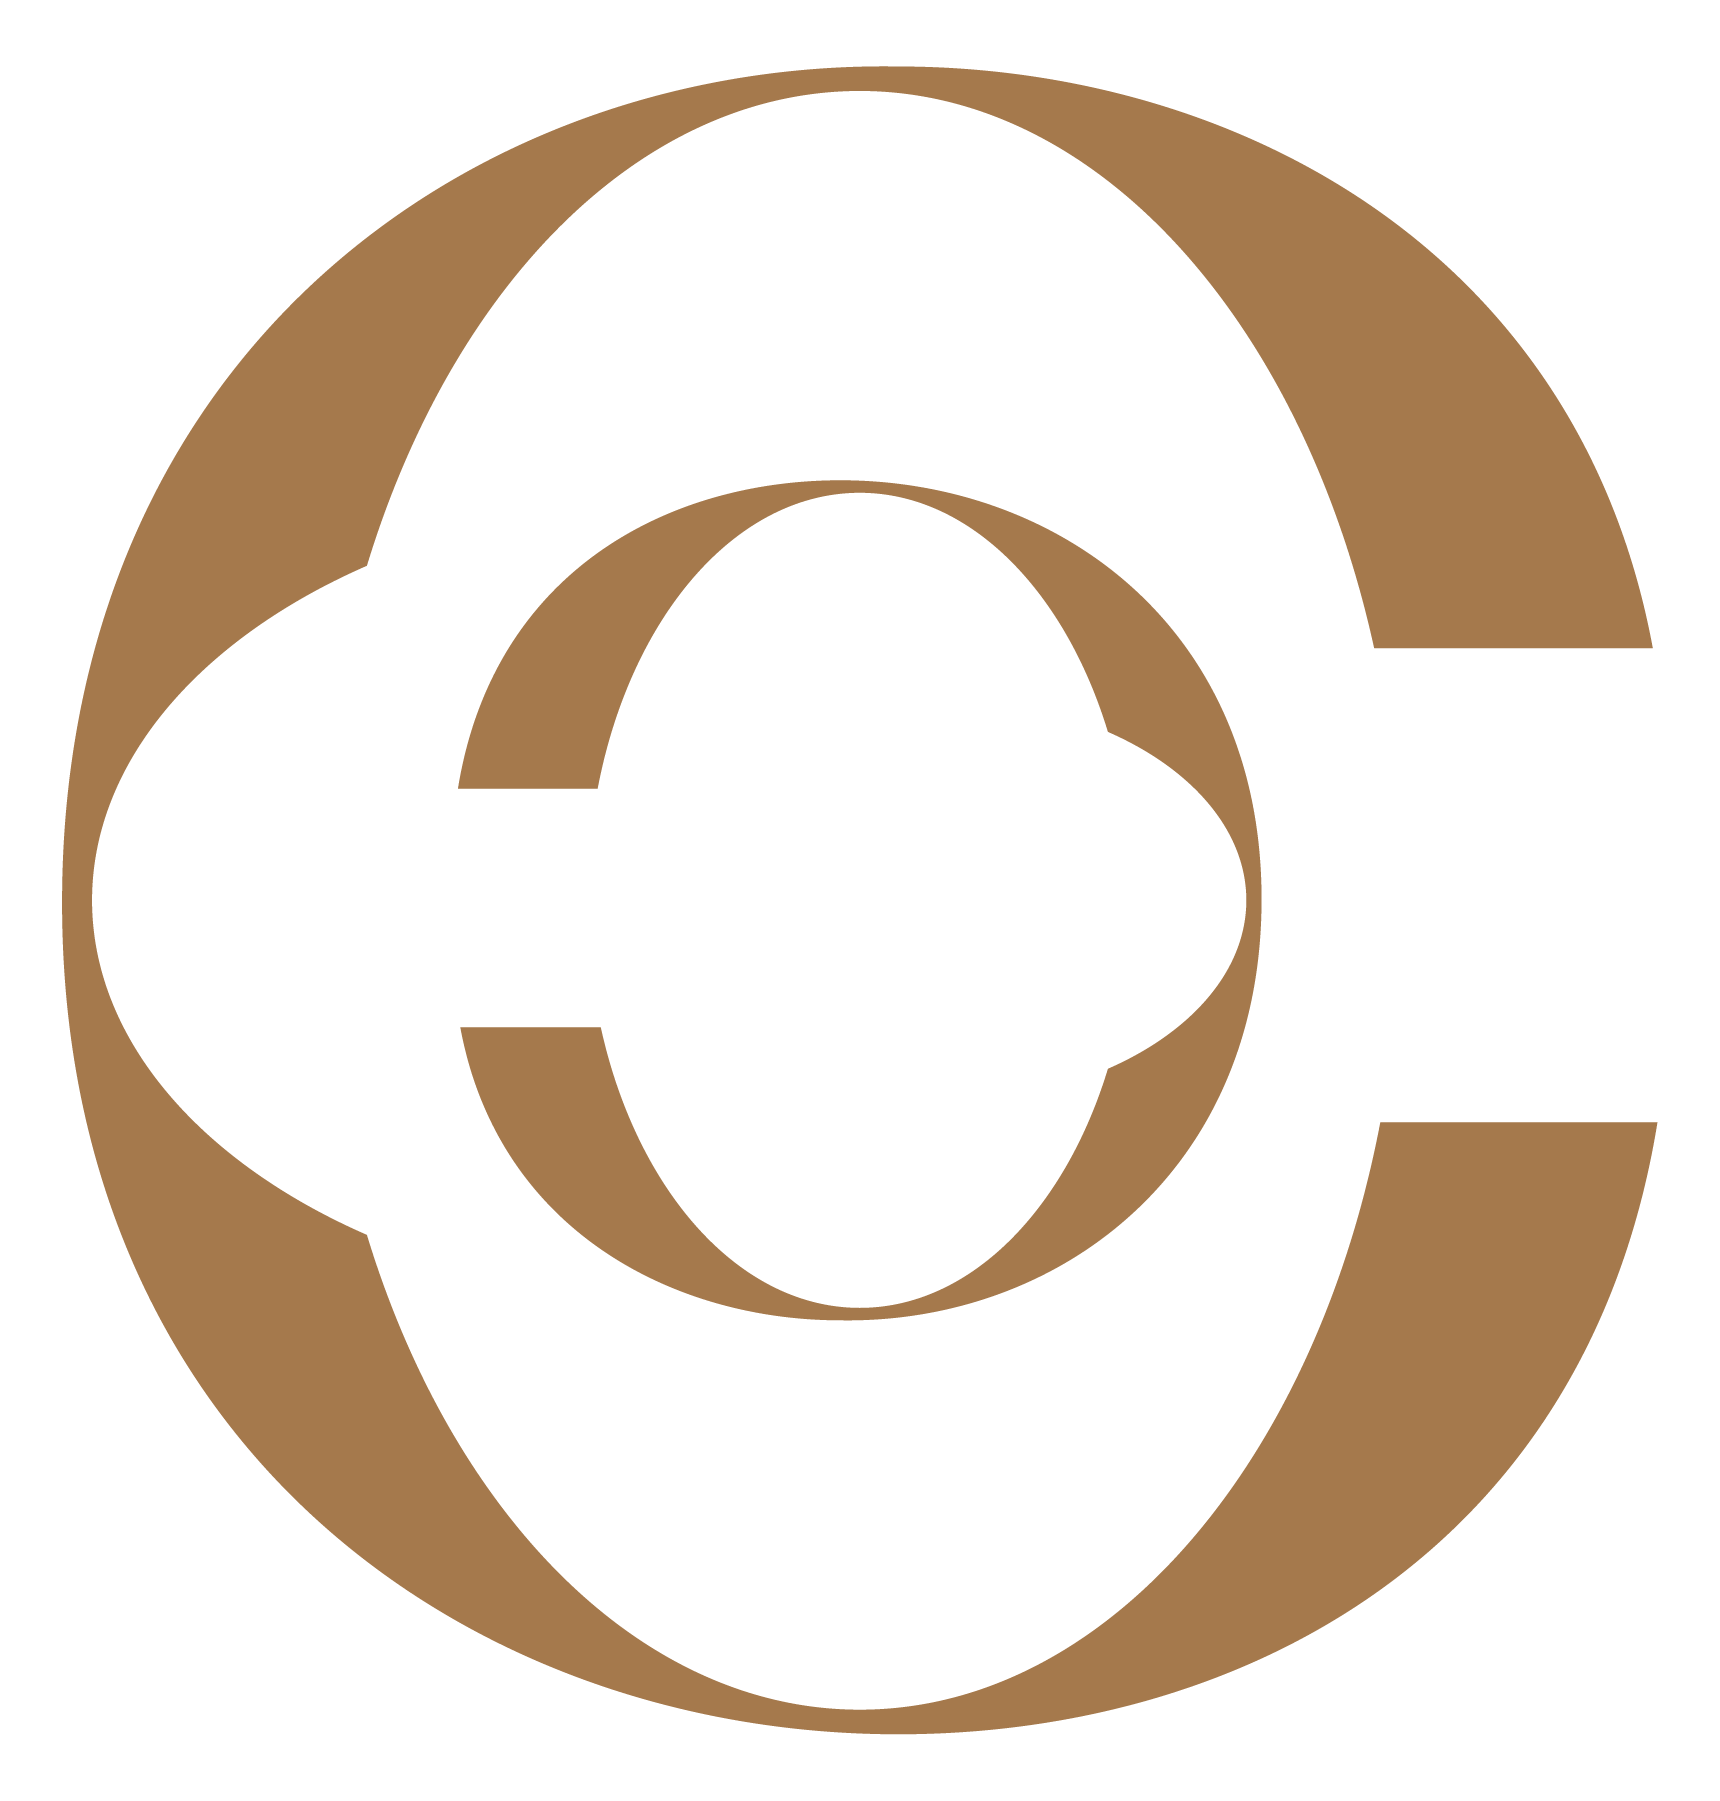 collectors-circle-logo-01